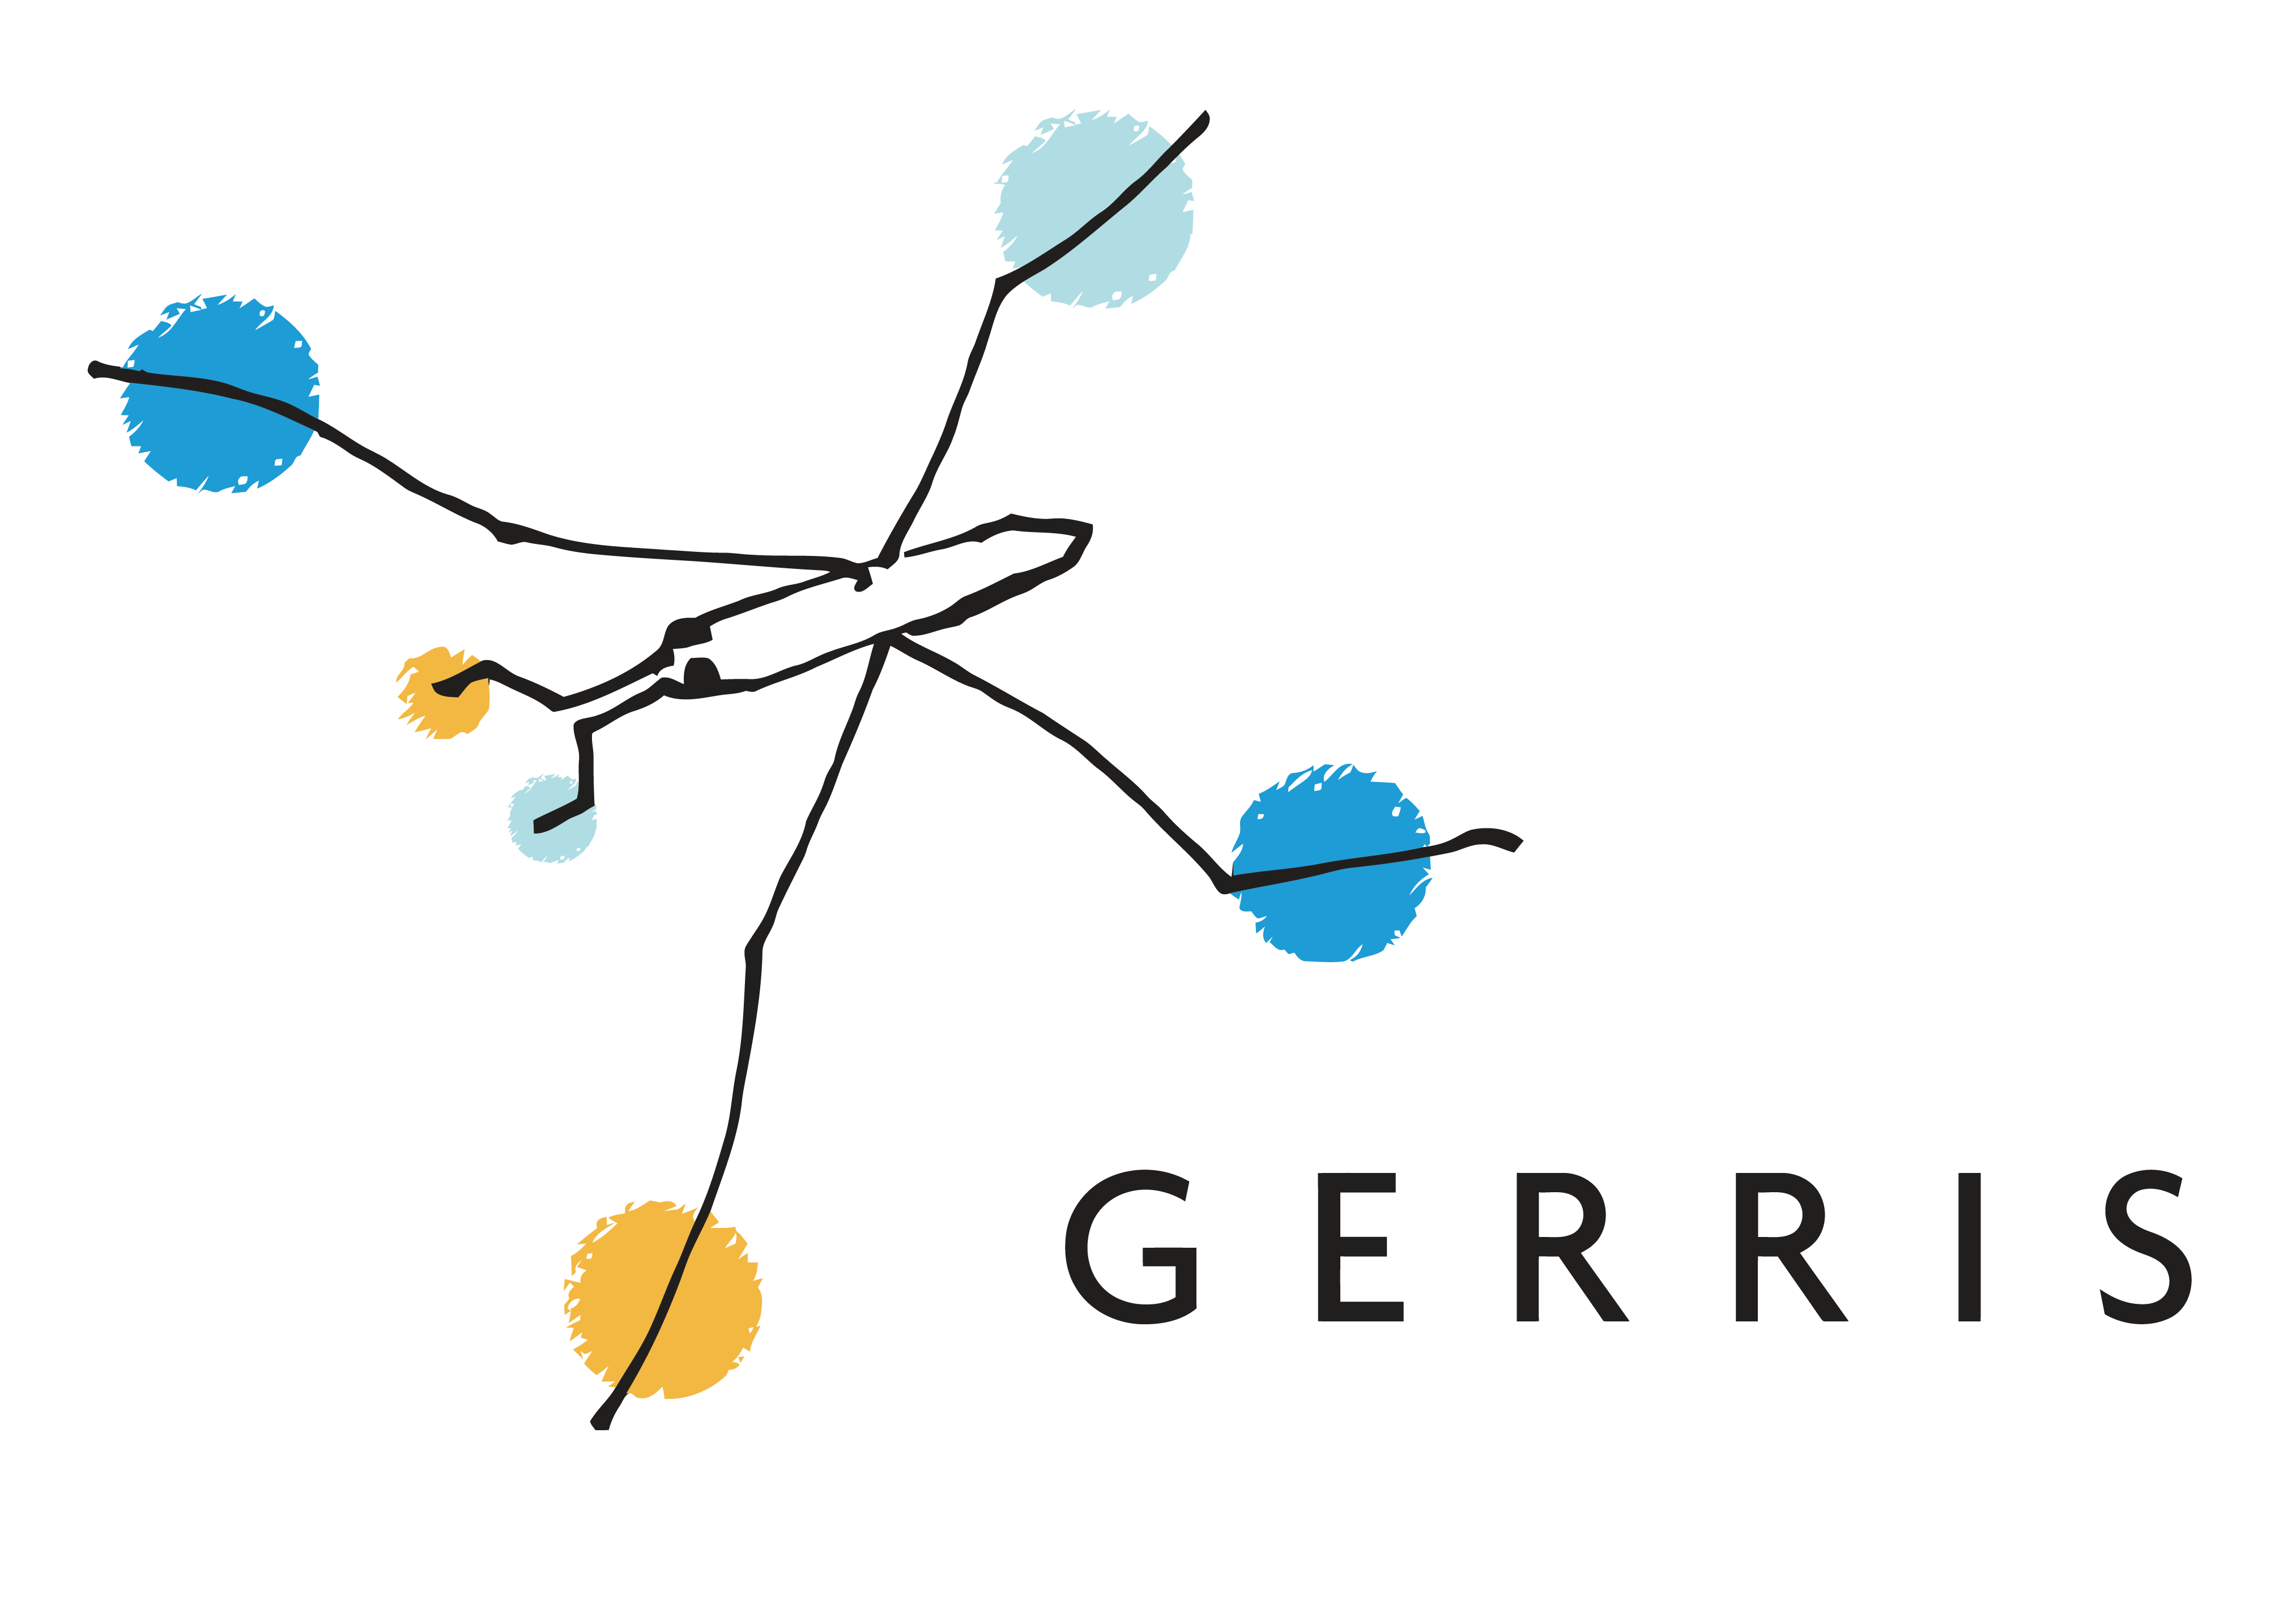 Gerris digital is a full-service digital strategy firm that reaches deeper into the conversation than any other agency anywhere. Gerris digital offers Internet and digital strategy consulting services.